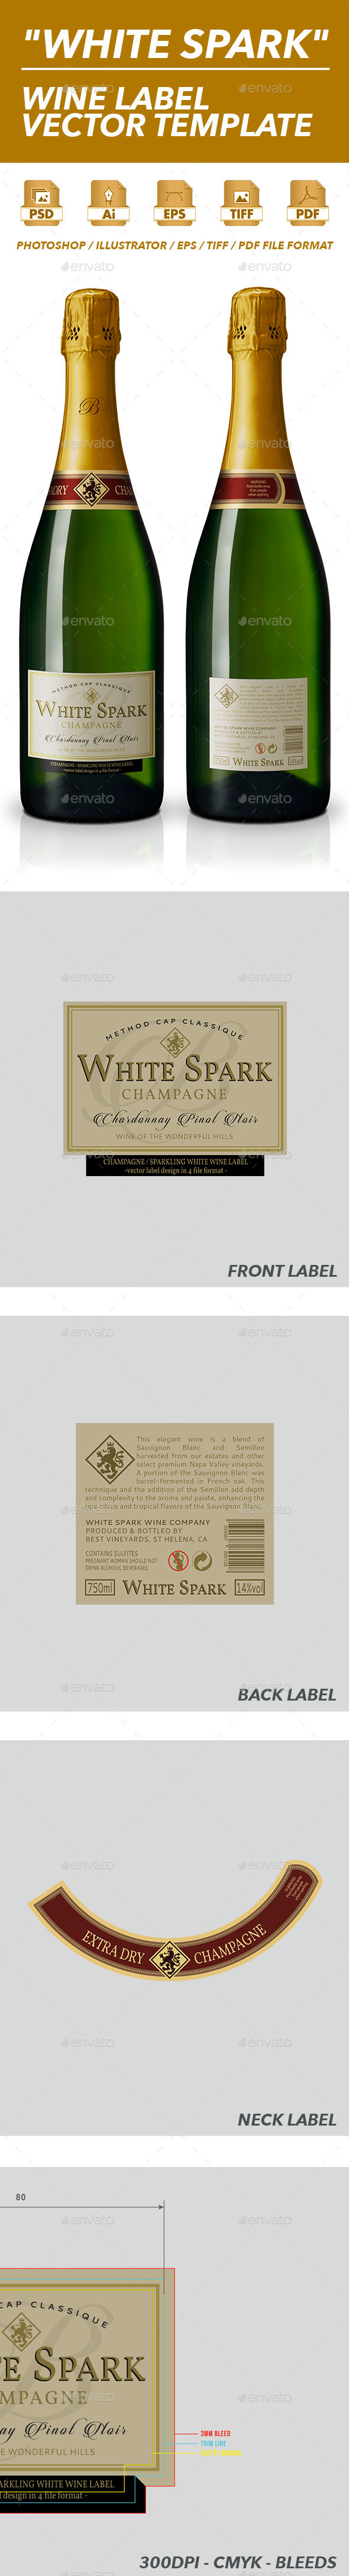 Sparkling Wine Label Vector Template